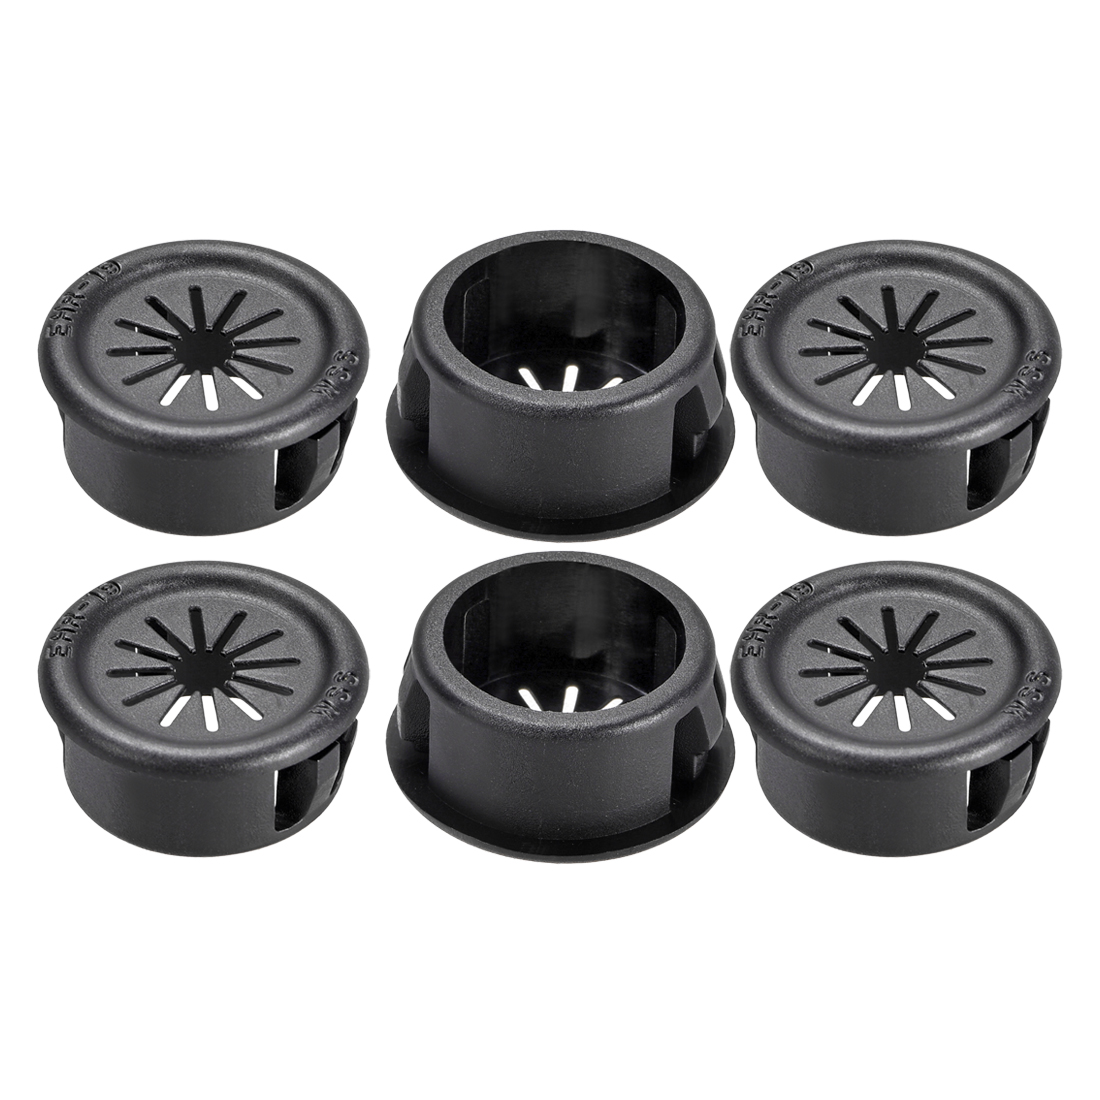 19mm Mounted Dia Cable Hose Snap Bushing Grommet Protector Black 6pcs